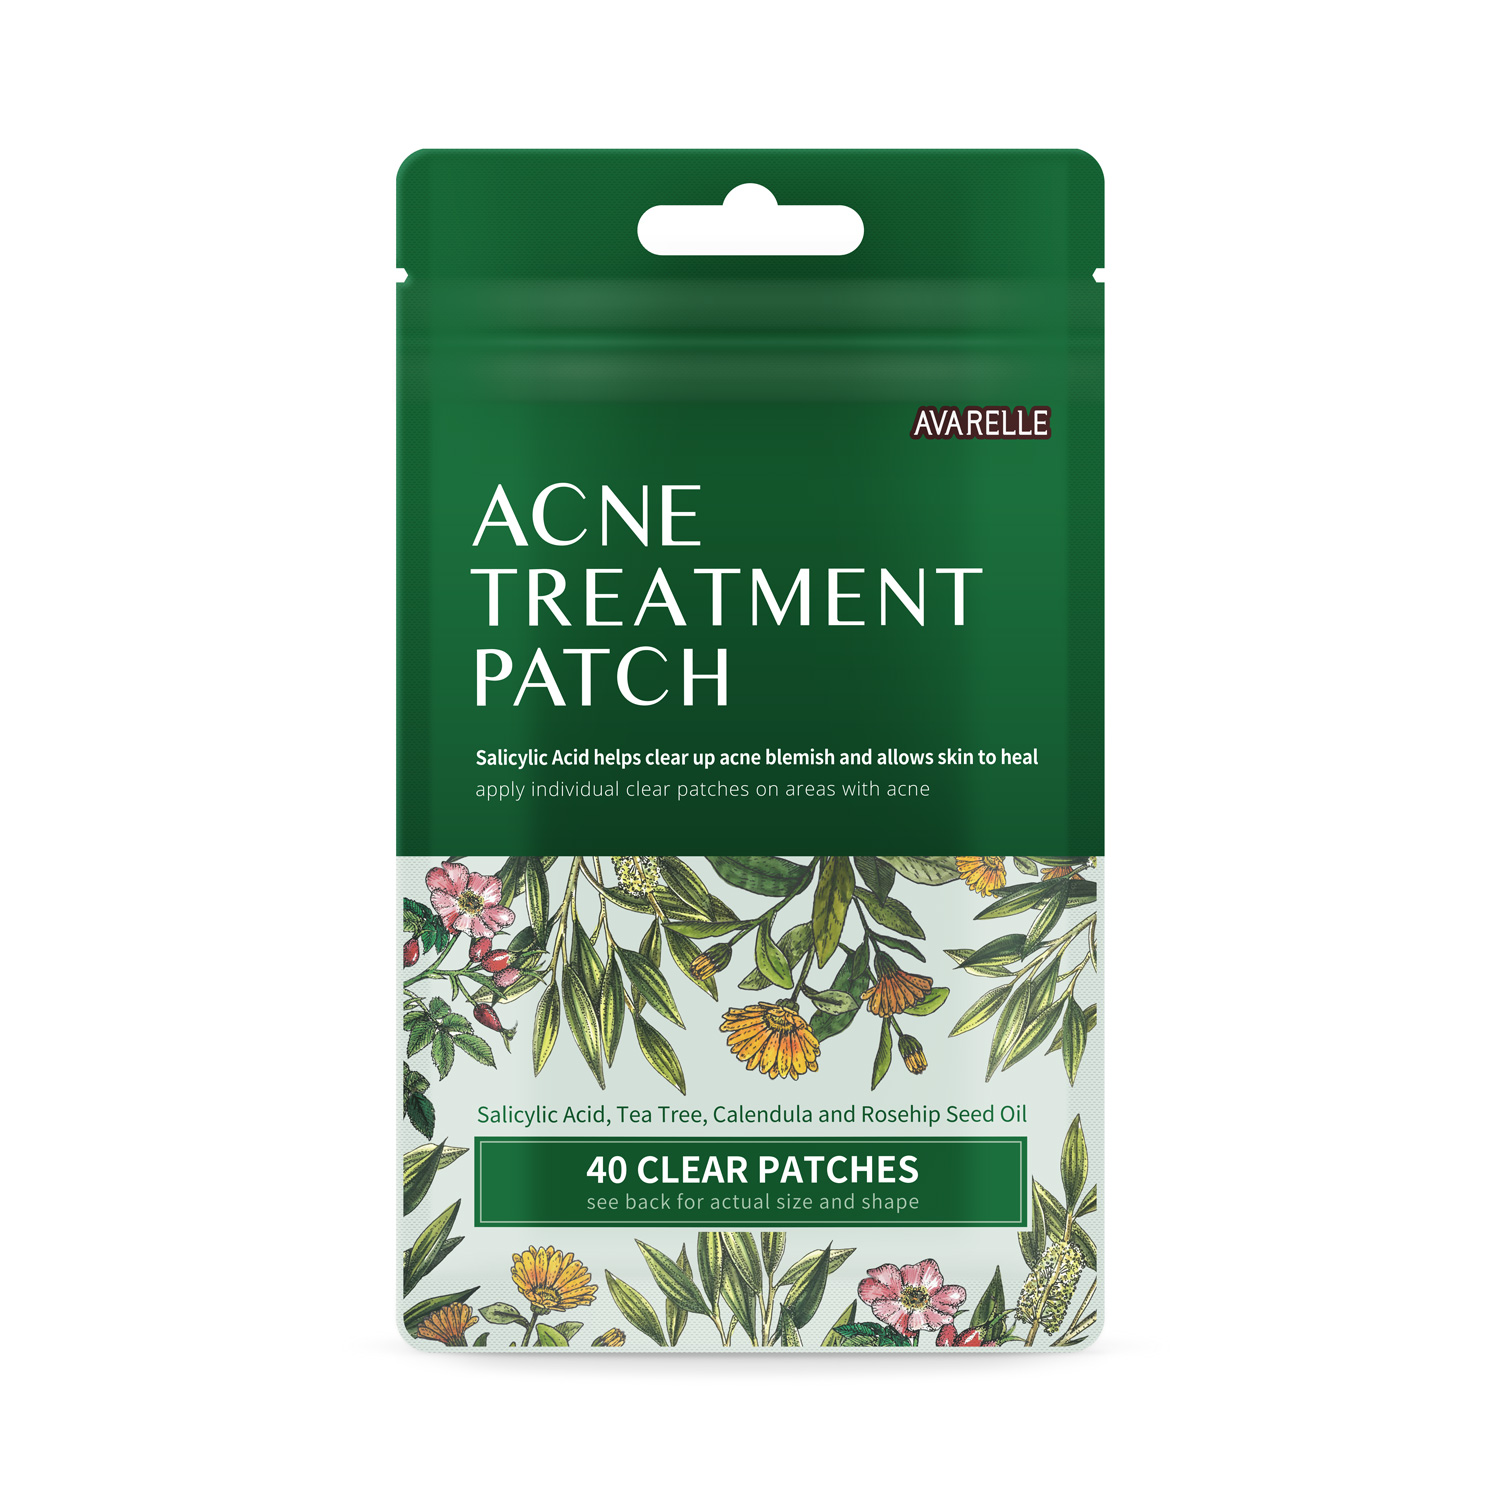 Acne Treatment Patch Grayscale image